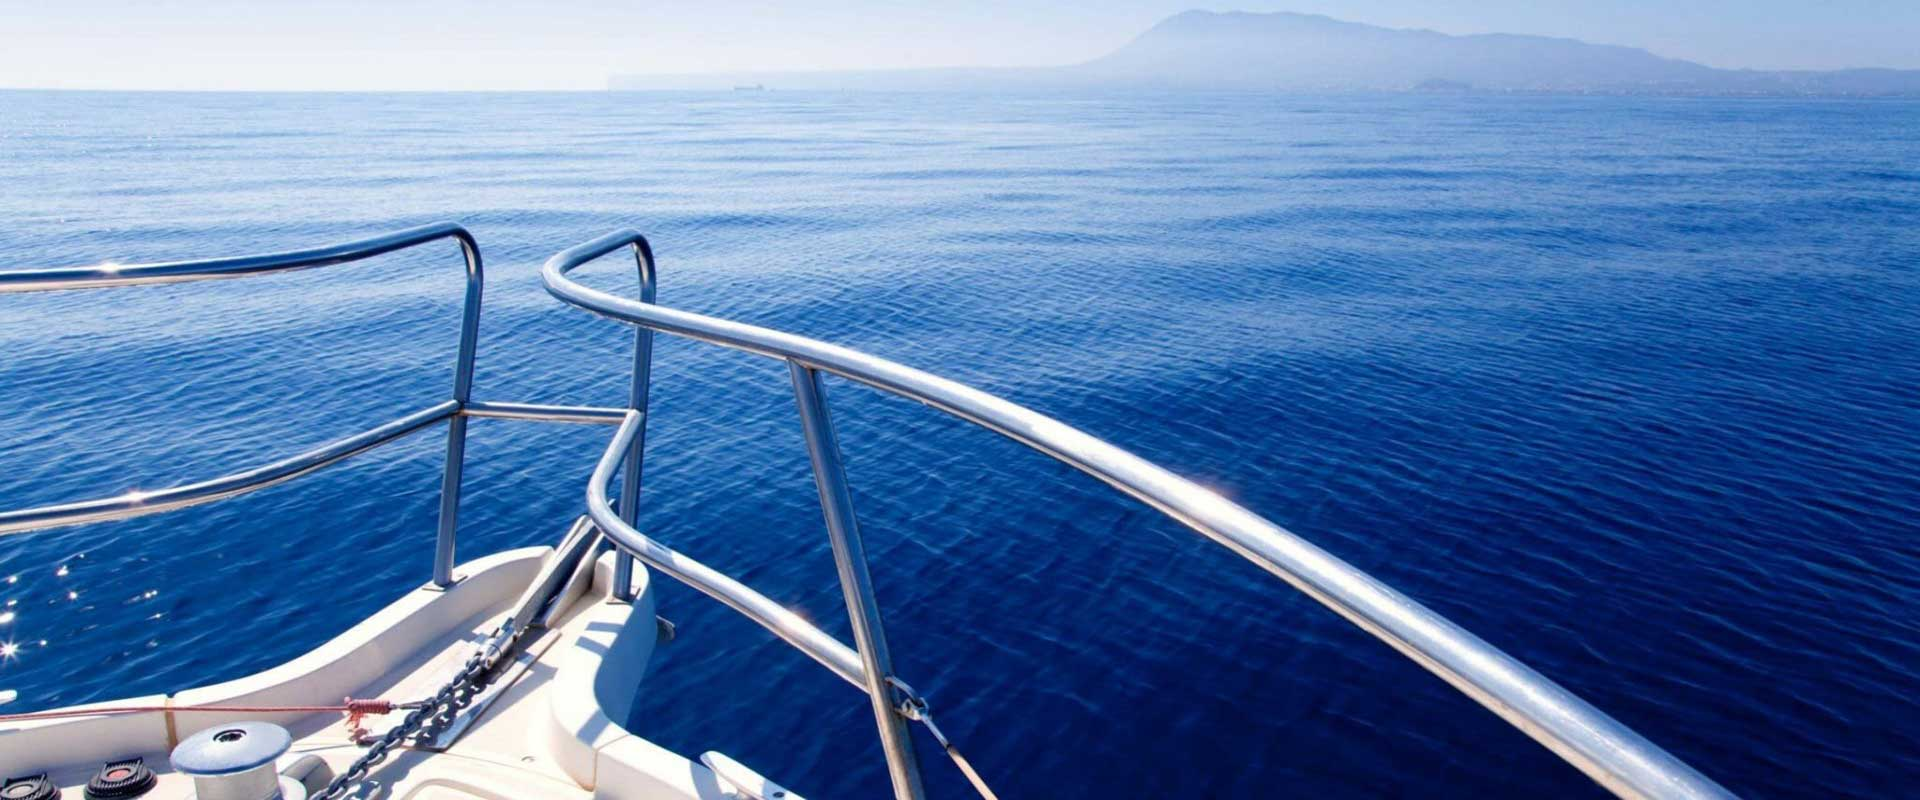 bow of yacht offshore